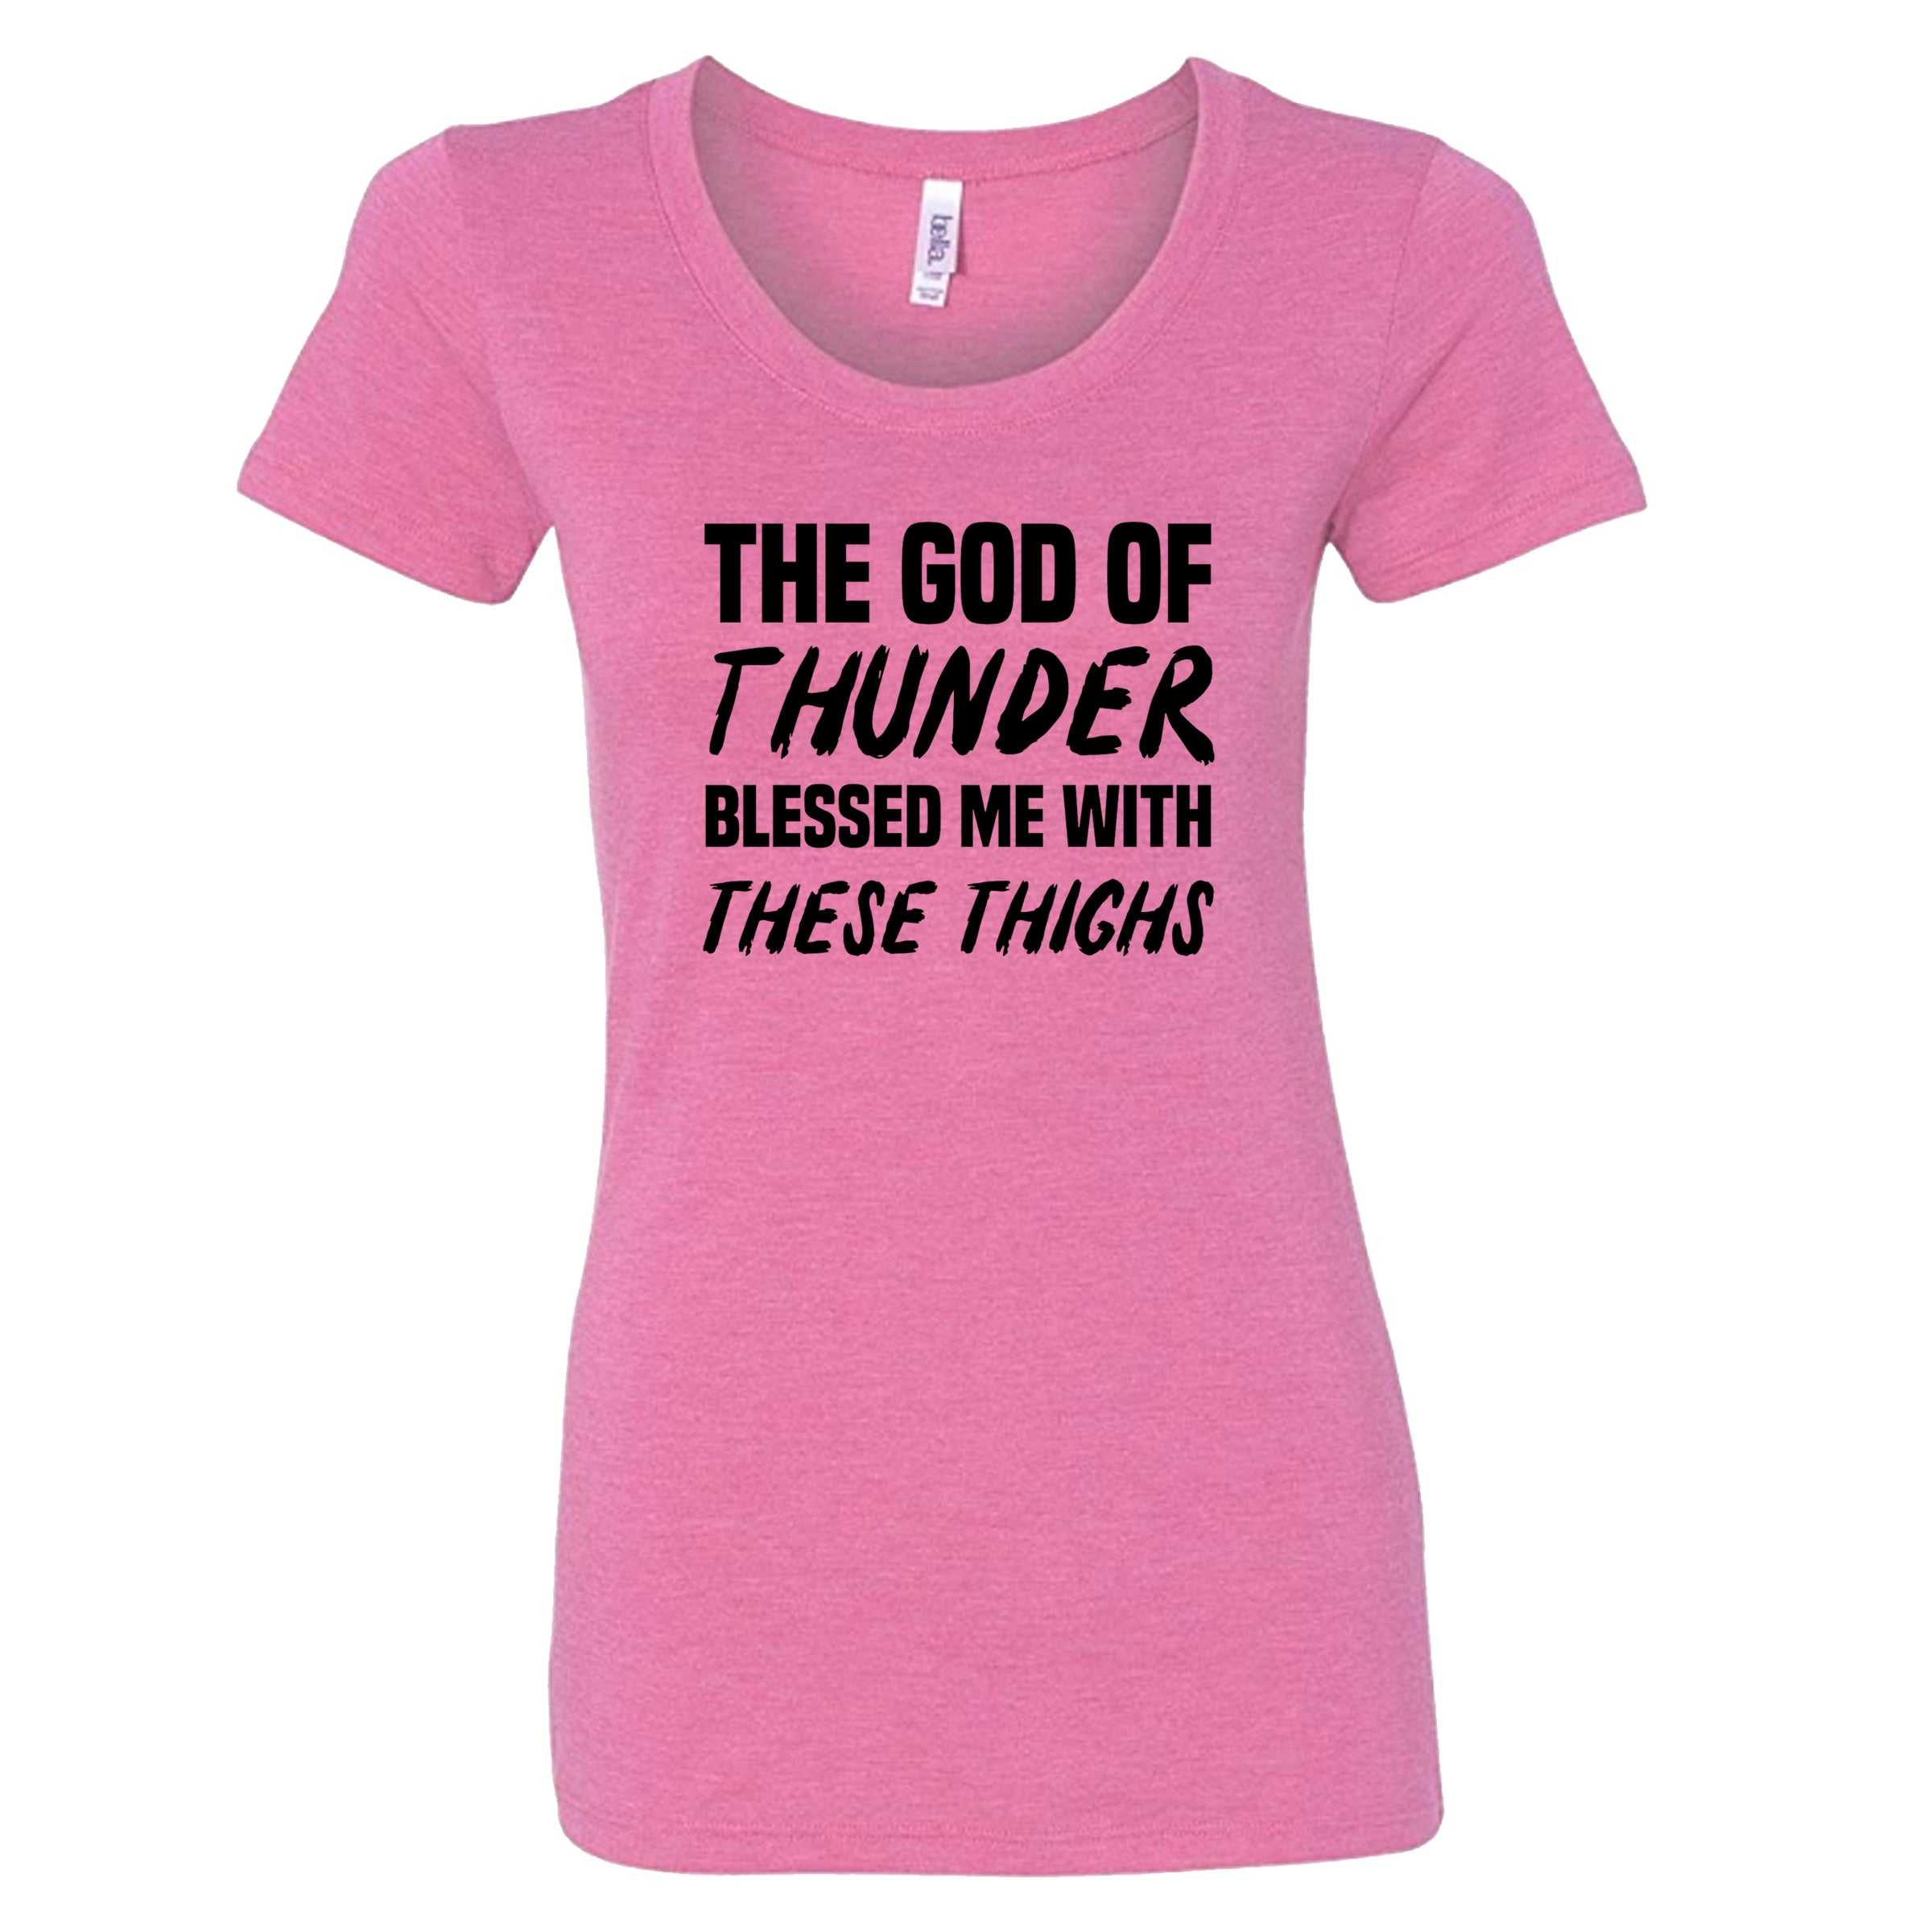 The God Of Thunder Blessed Me With These Thighs Shirt